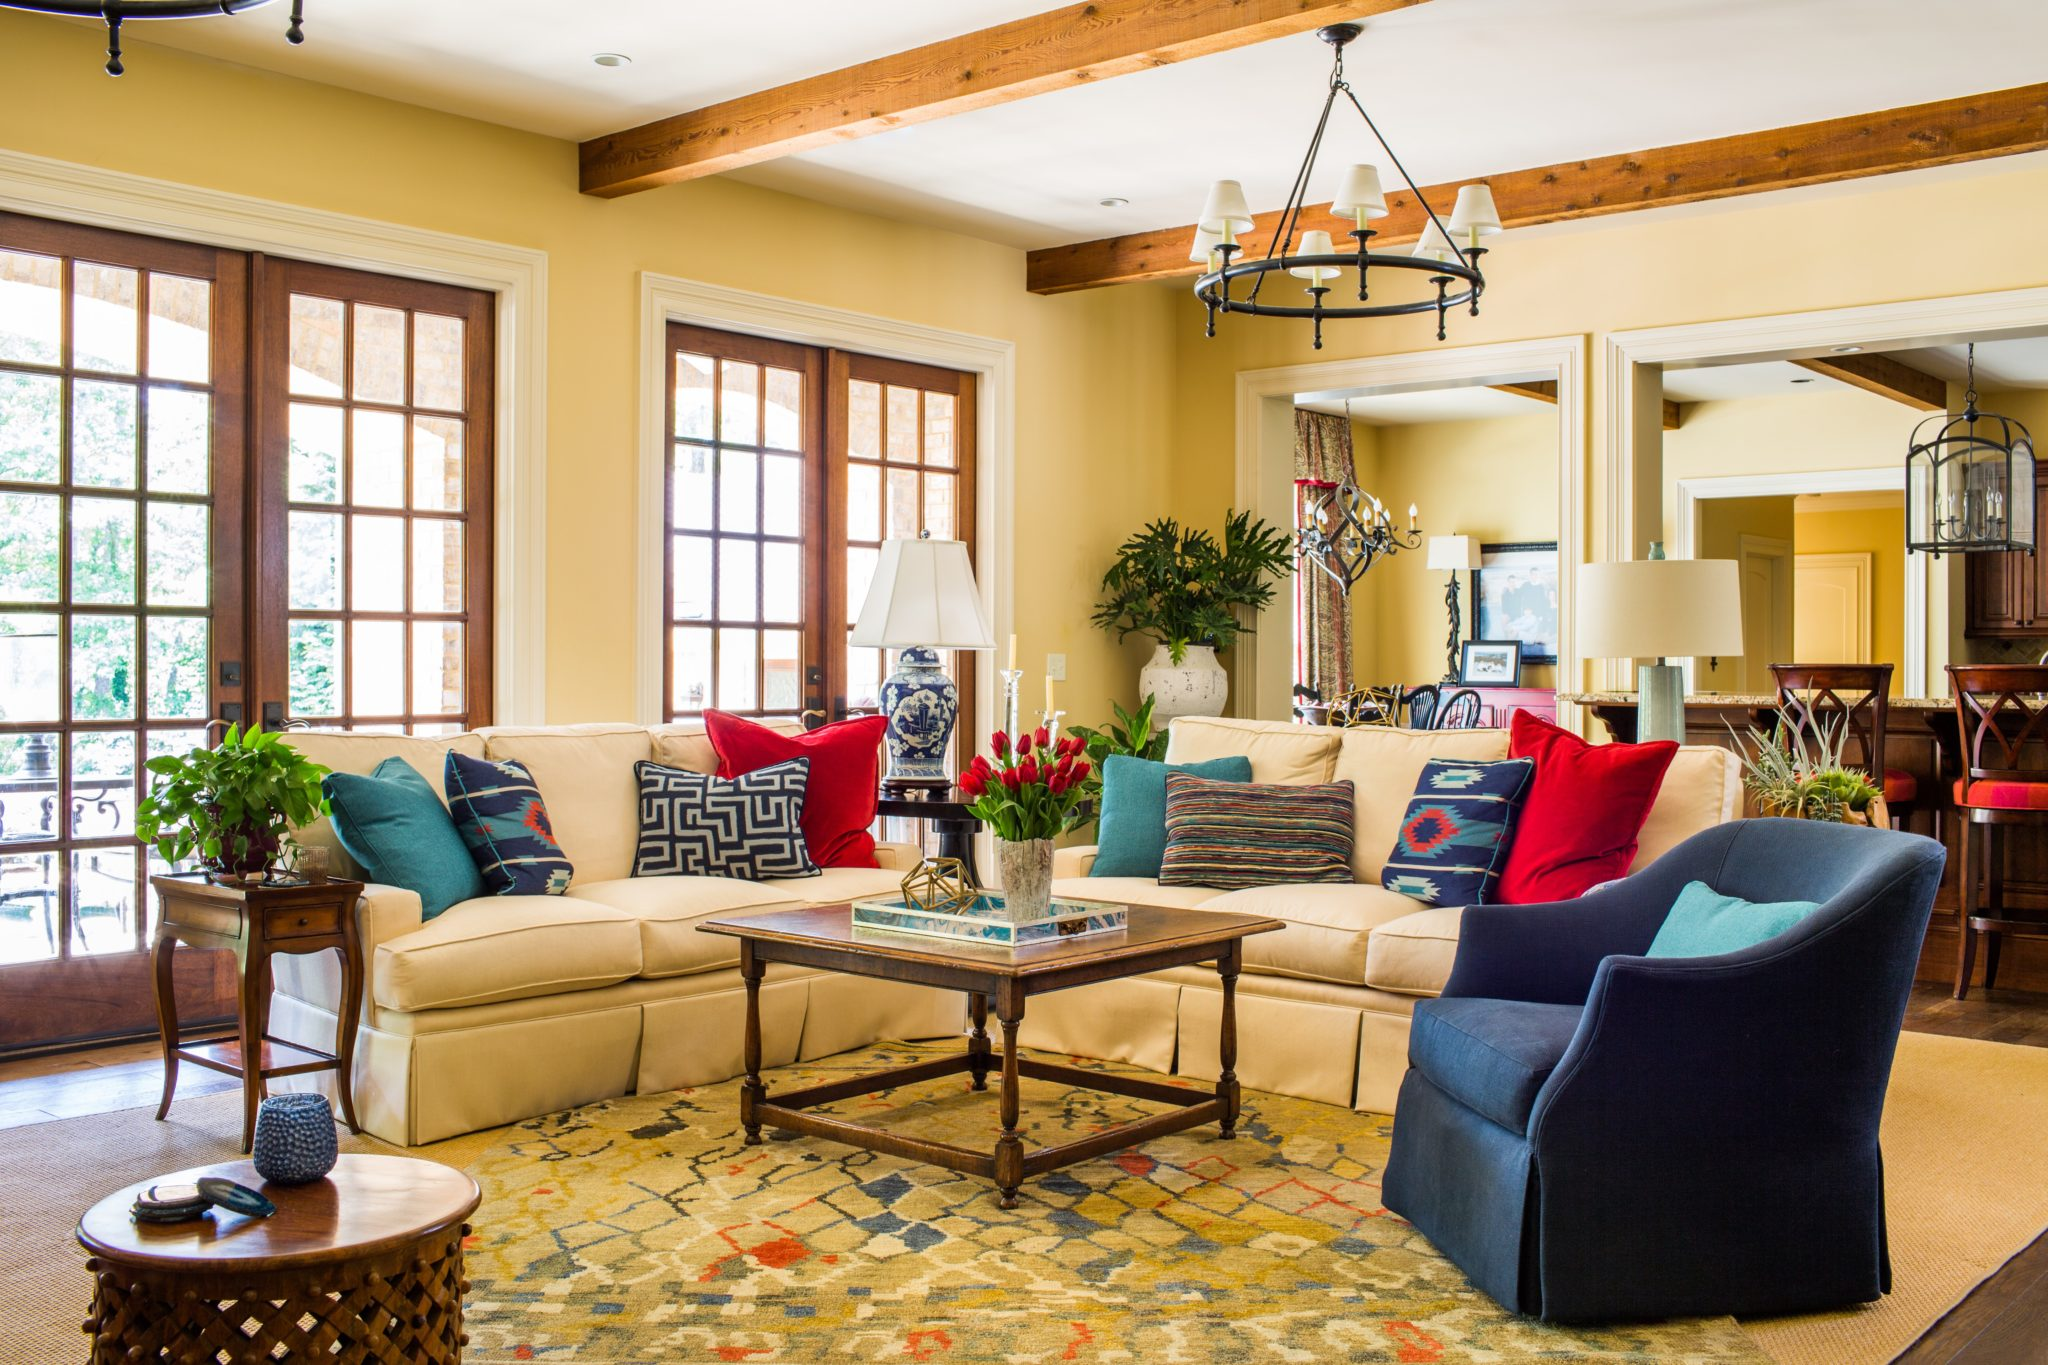 Great room with a play of solids and southwestern prints by Meriwether Design Group